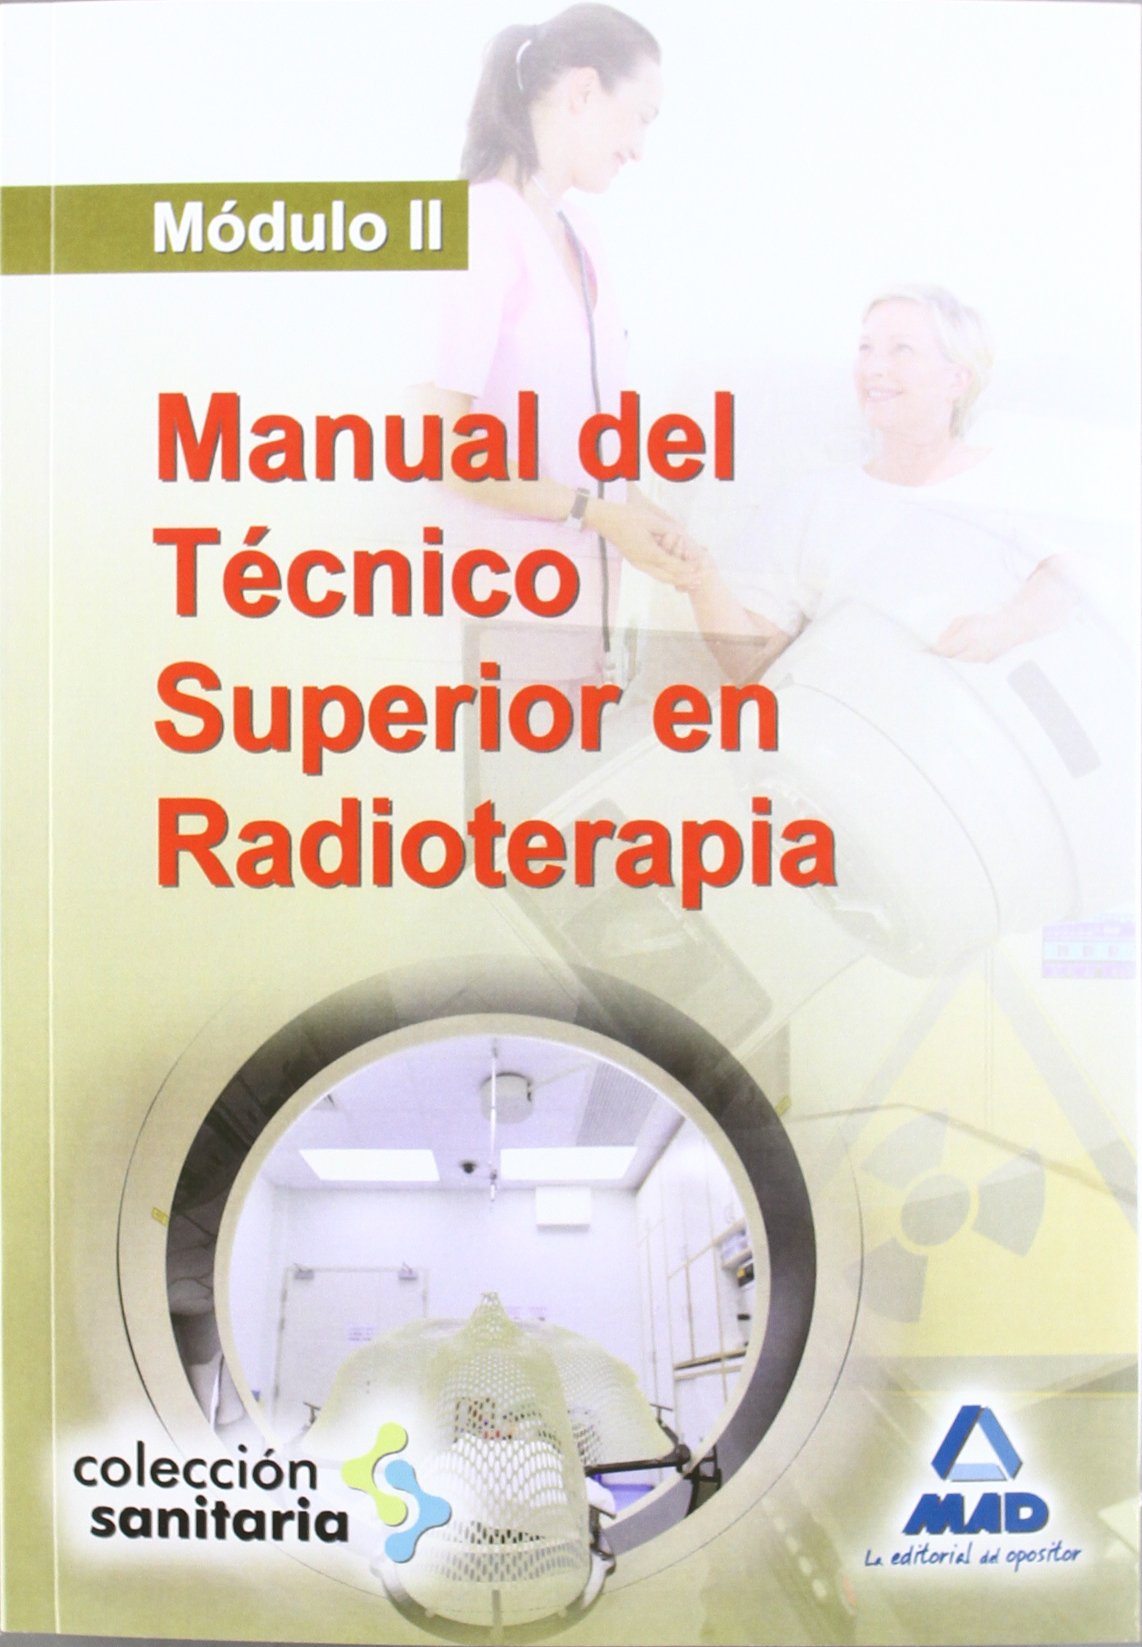 Mod. Ii - Manual Del Tecnico Superior En Radioterapia Sanitaria mad: Amazon.es: Aa.Vv.: Libros